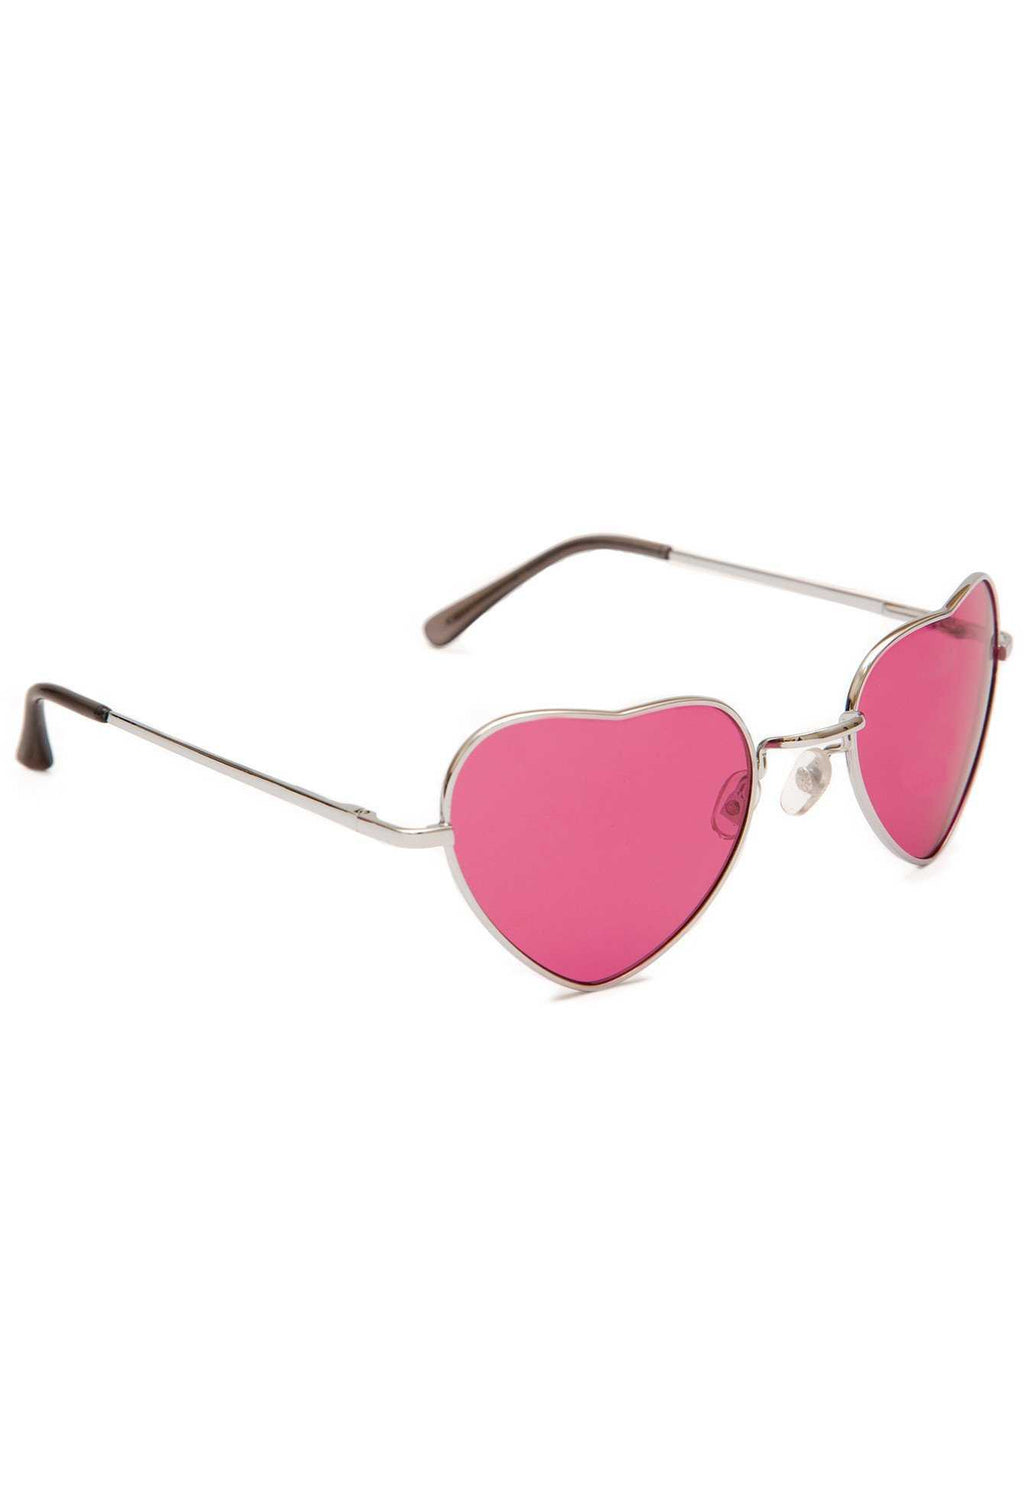 Accessories - Lennon Love Sunglasses - Rose